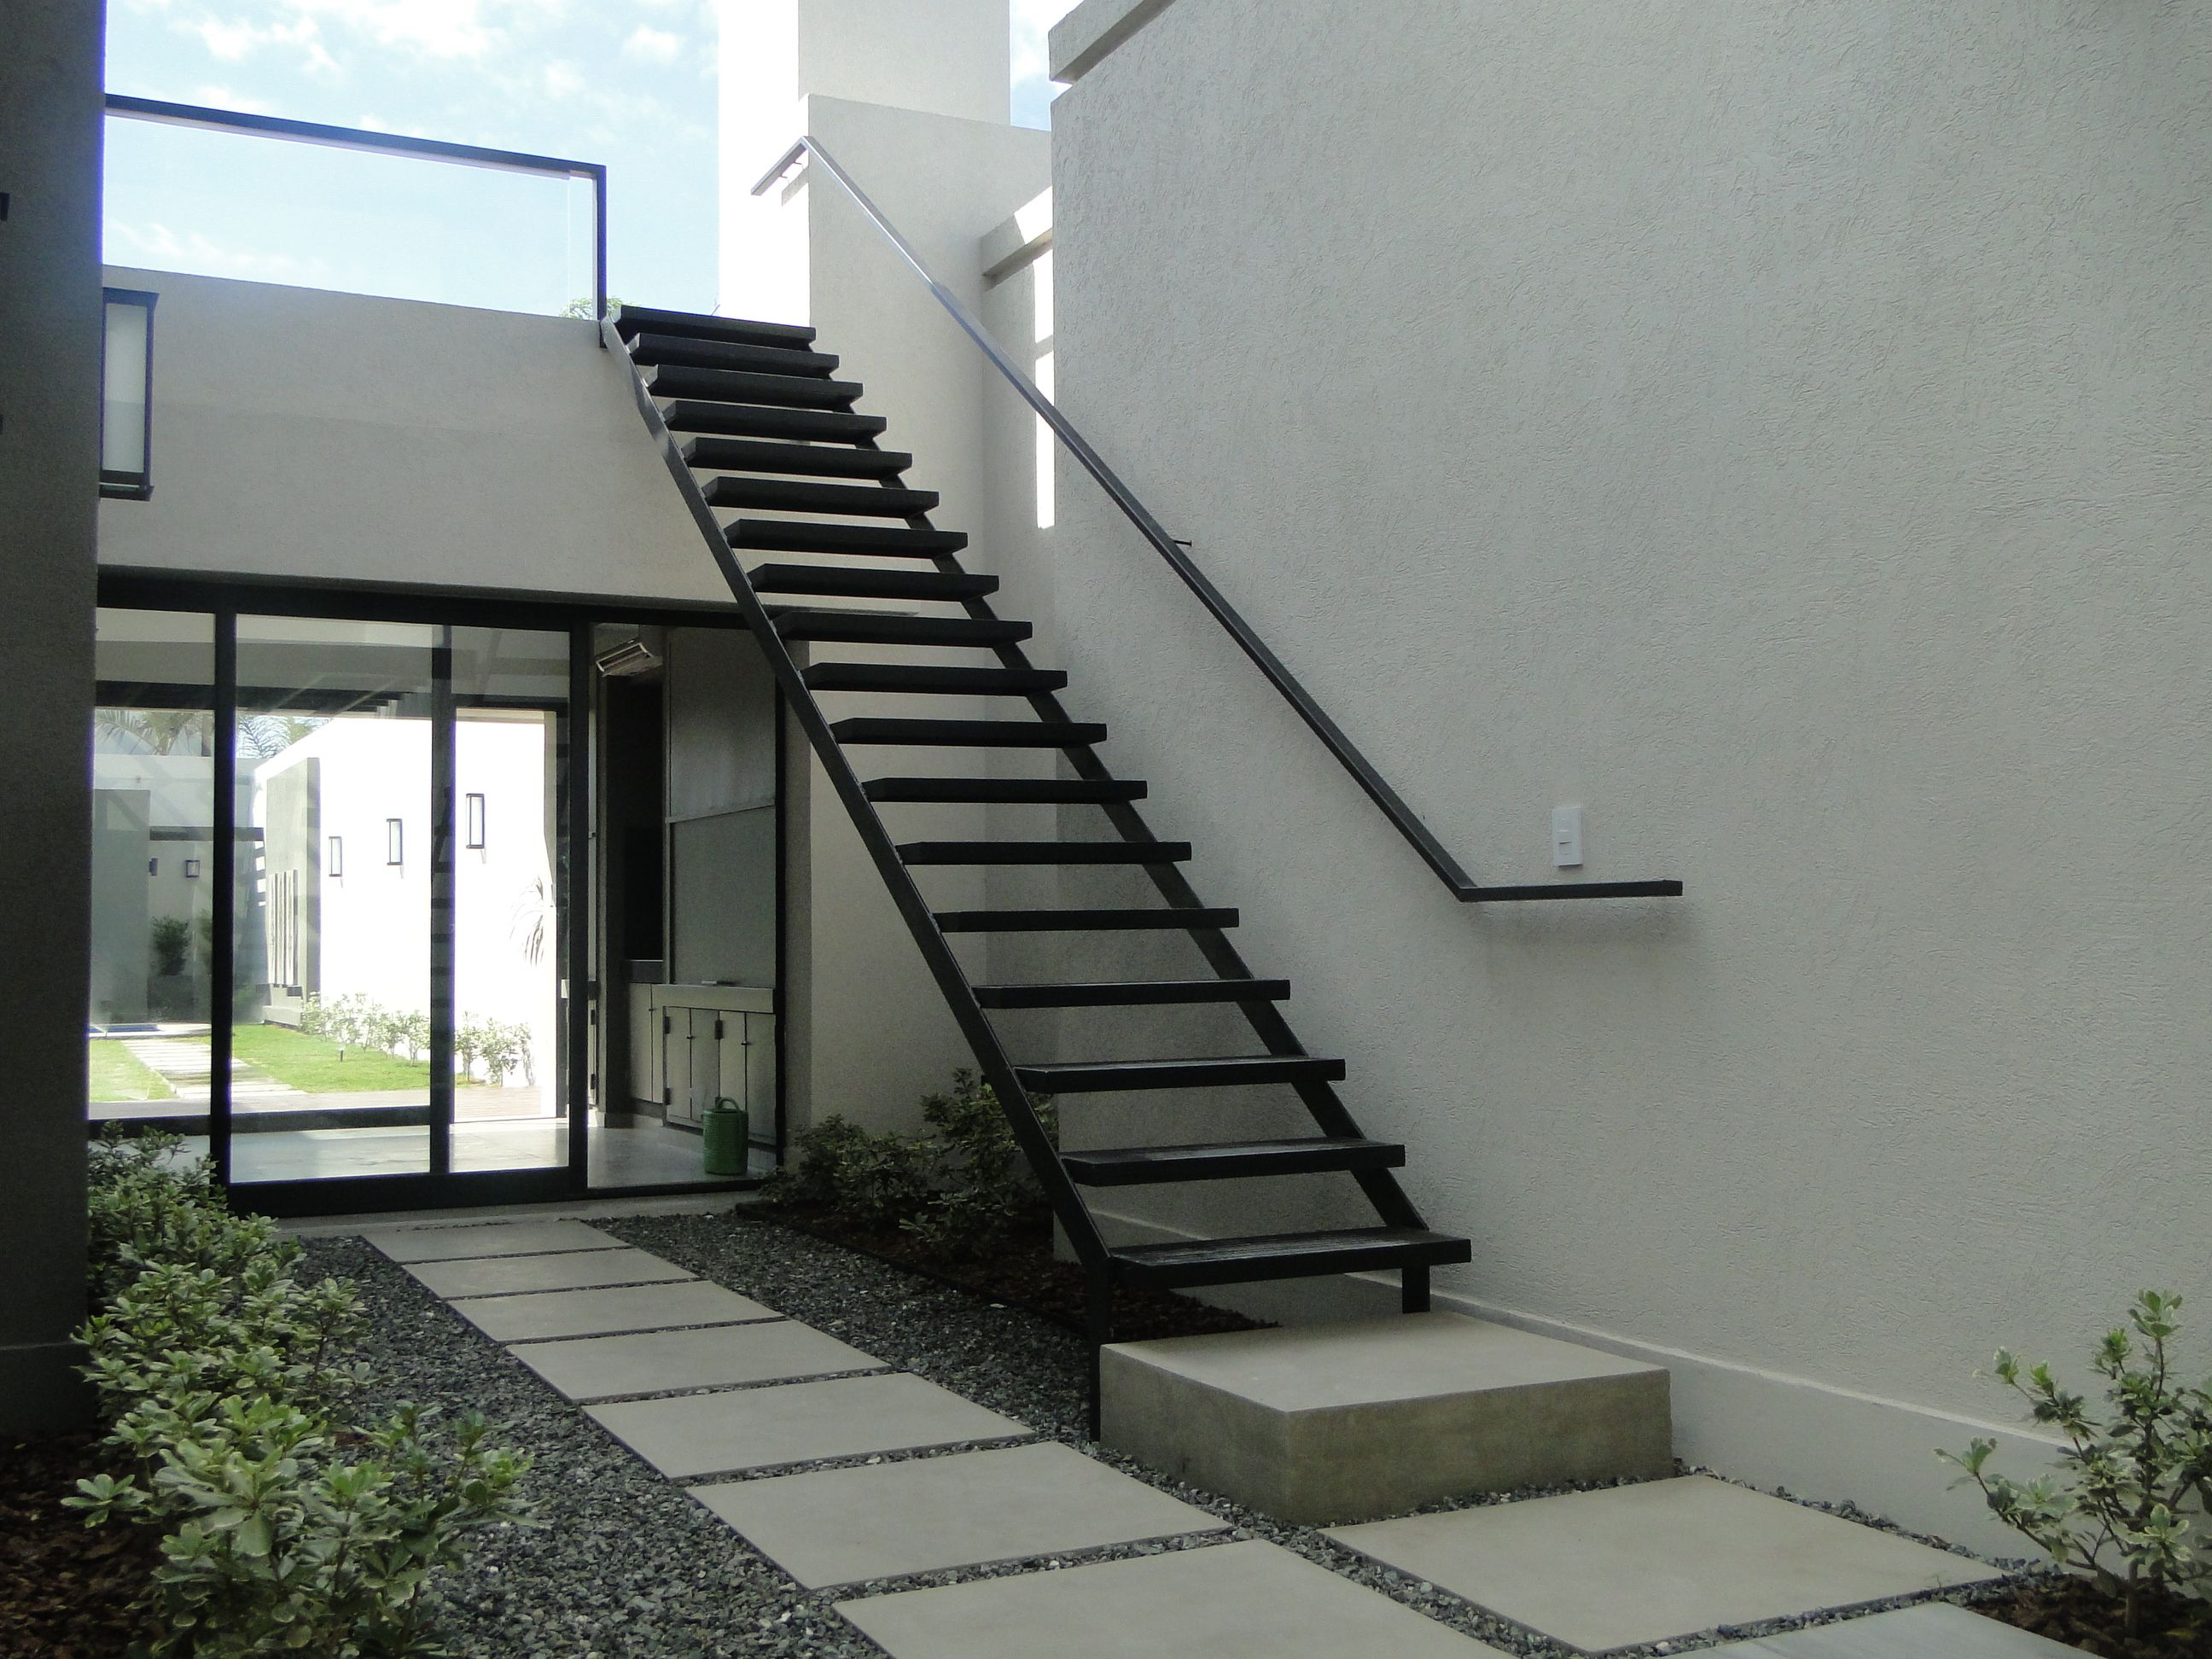 Porches Exteriores Escalera Metalica Y Patio Interior Escaleras Pinterest